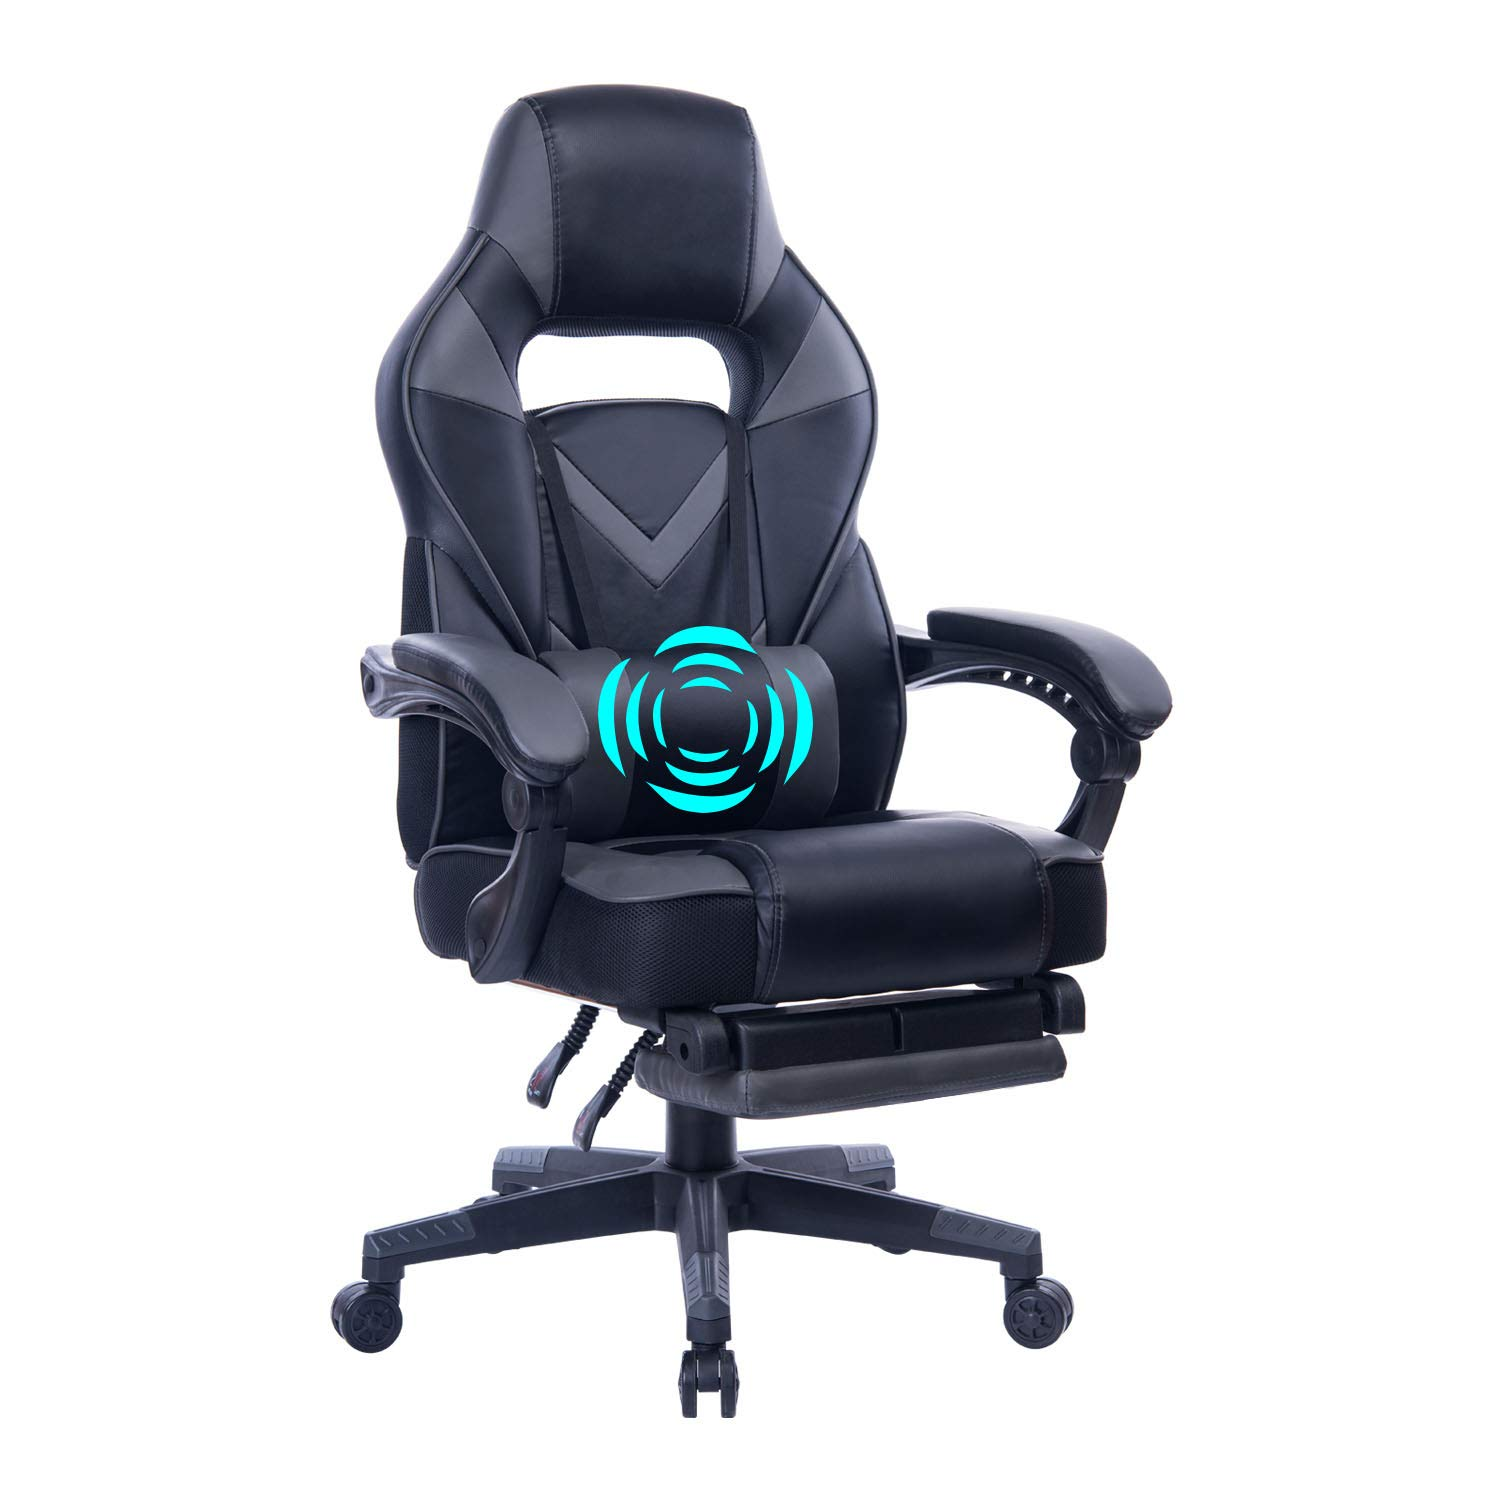 HEALGEN Reclining Gaming Chair with Adjustable Massage Lumbar Pillow and Footrest- Memory Foam PC Computer Racing Chair - Ergonomic High-Back Desk Office Chair GM005-Grey by HEALGEN